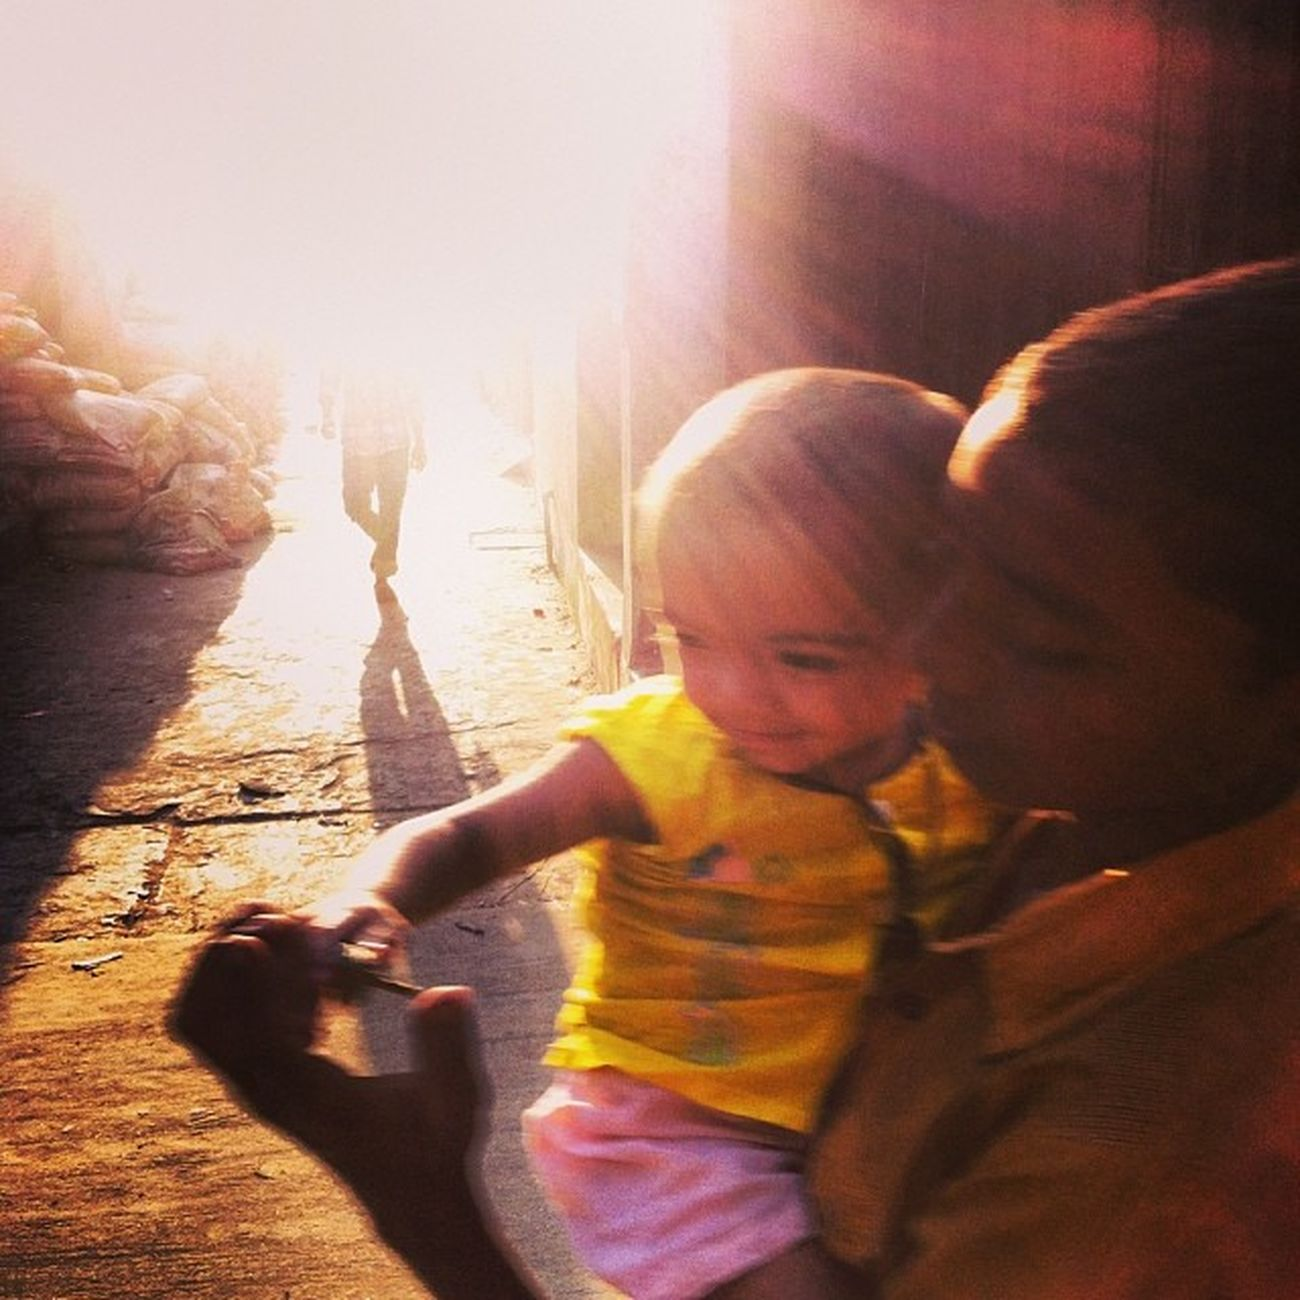 Sun Light Shadow Ray Boy Child Children Winter Evening Street Chaktai Chittagong Instagram